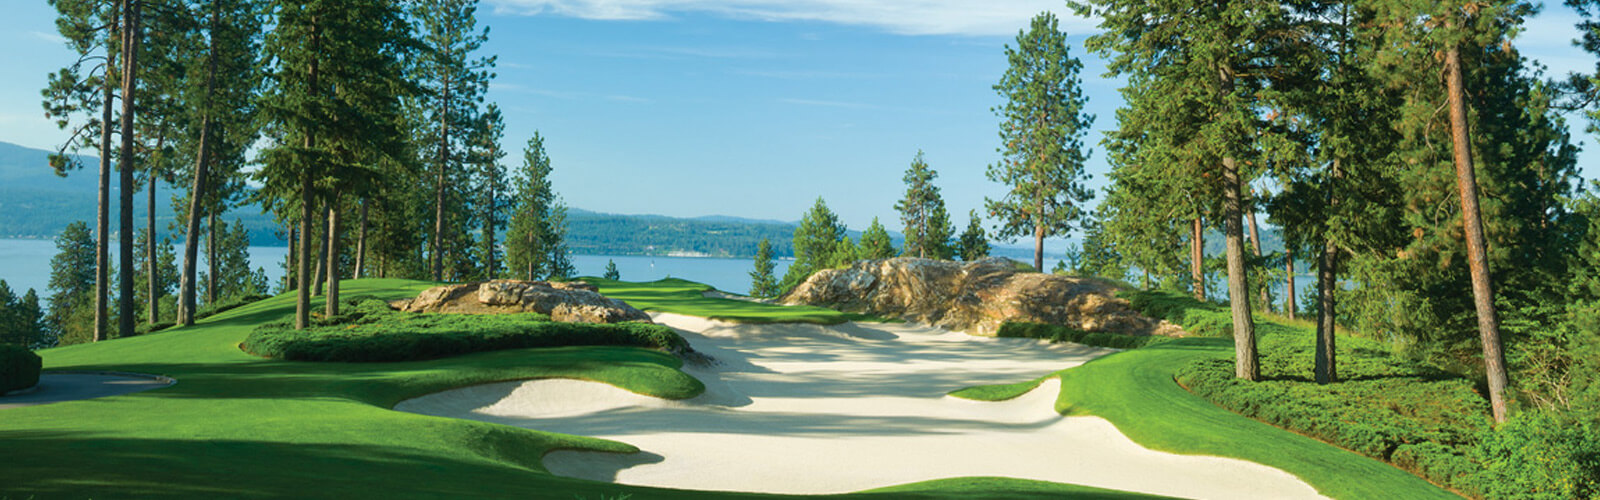 Coeur d'Alene Country Club